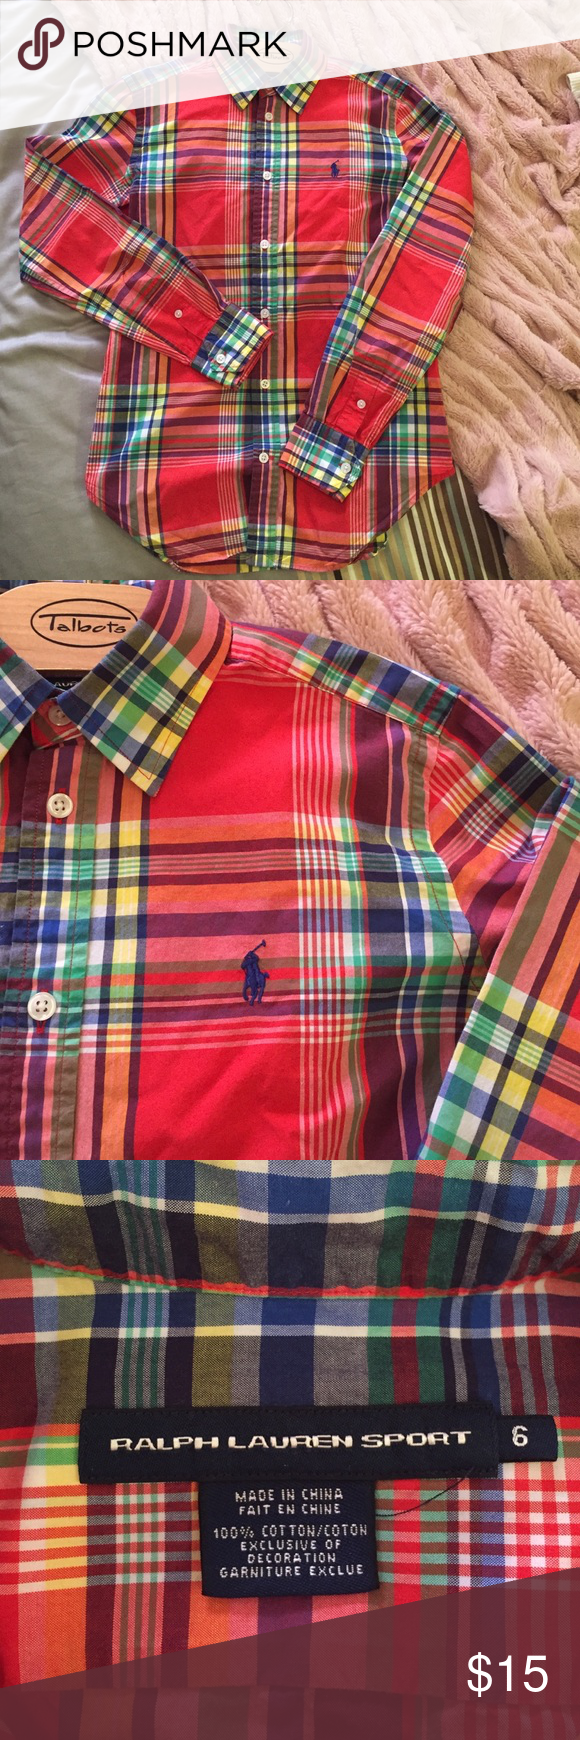 Ralph Lauren woven top This shirt is easy to dress up or dress down! The material is thin and lightweight, so it is great for layering. Great condition with no flaws. Ralph Lauren Tops Button Down Shirts